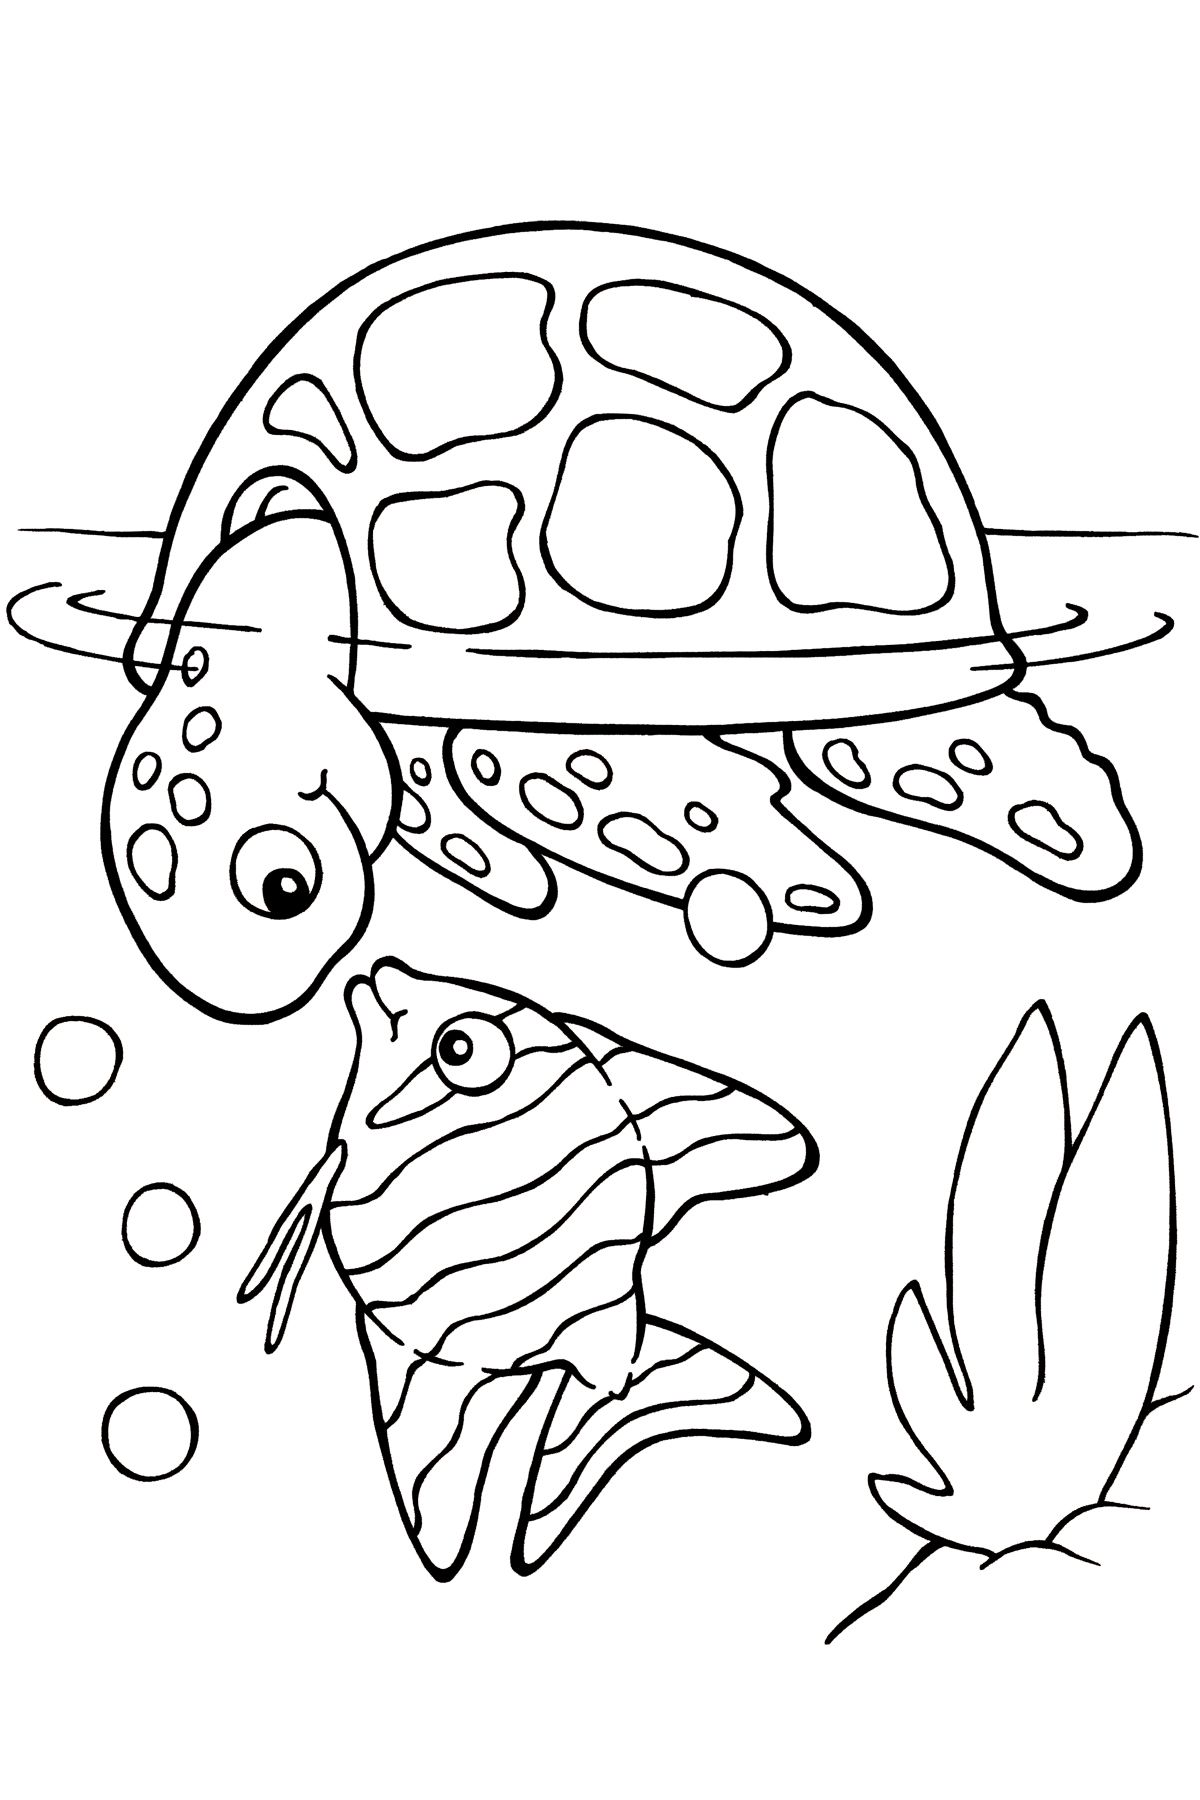 Coloring pages of spring things -  Coloring Page Coloring Sheet